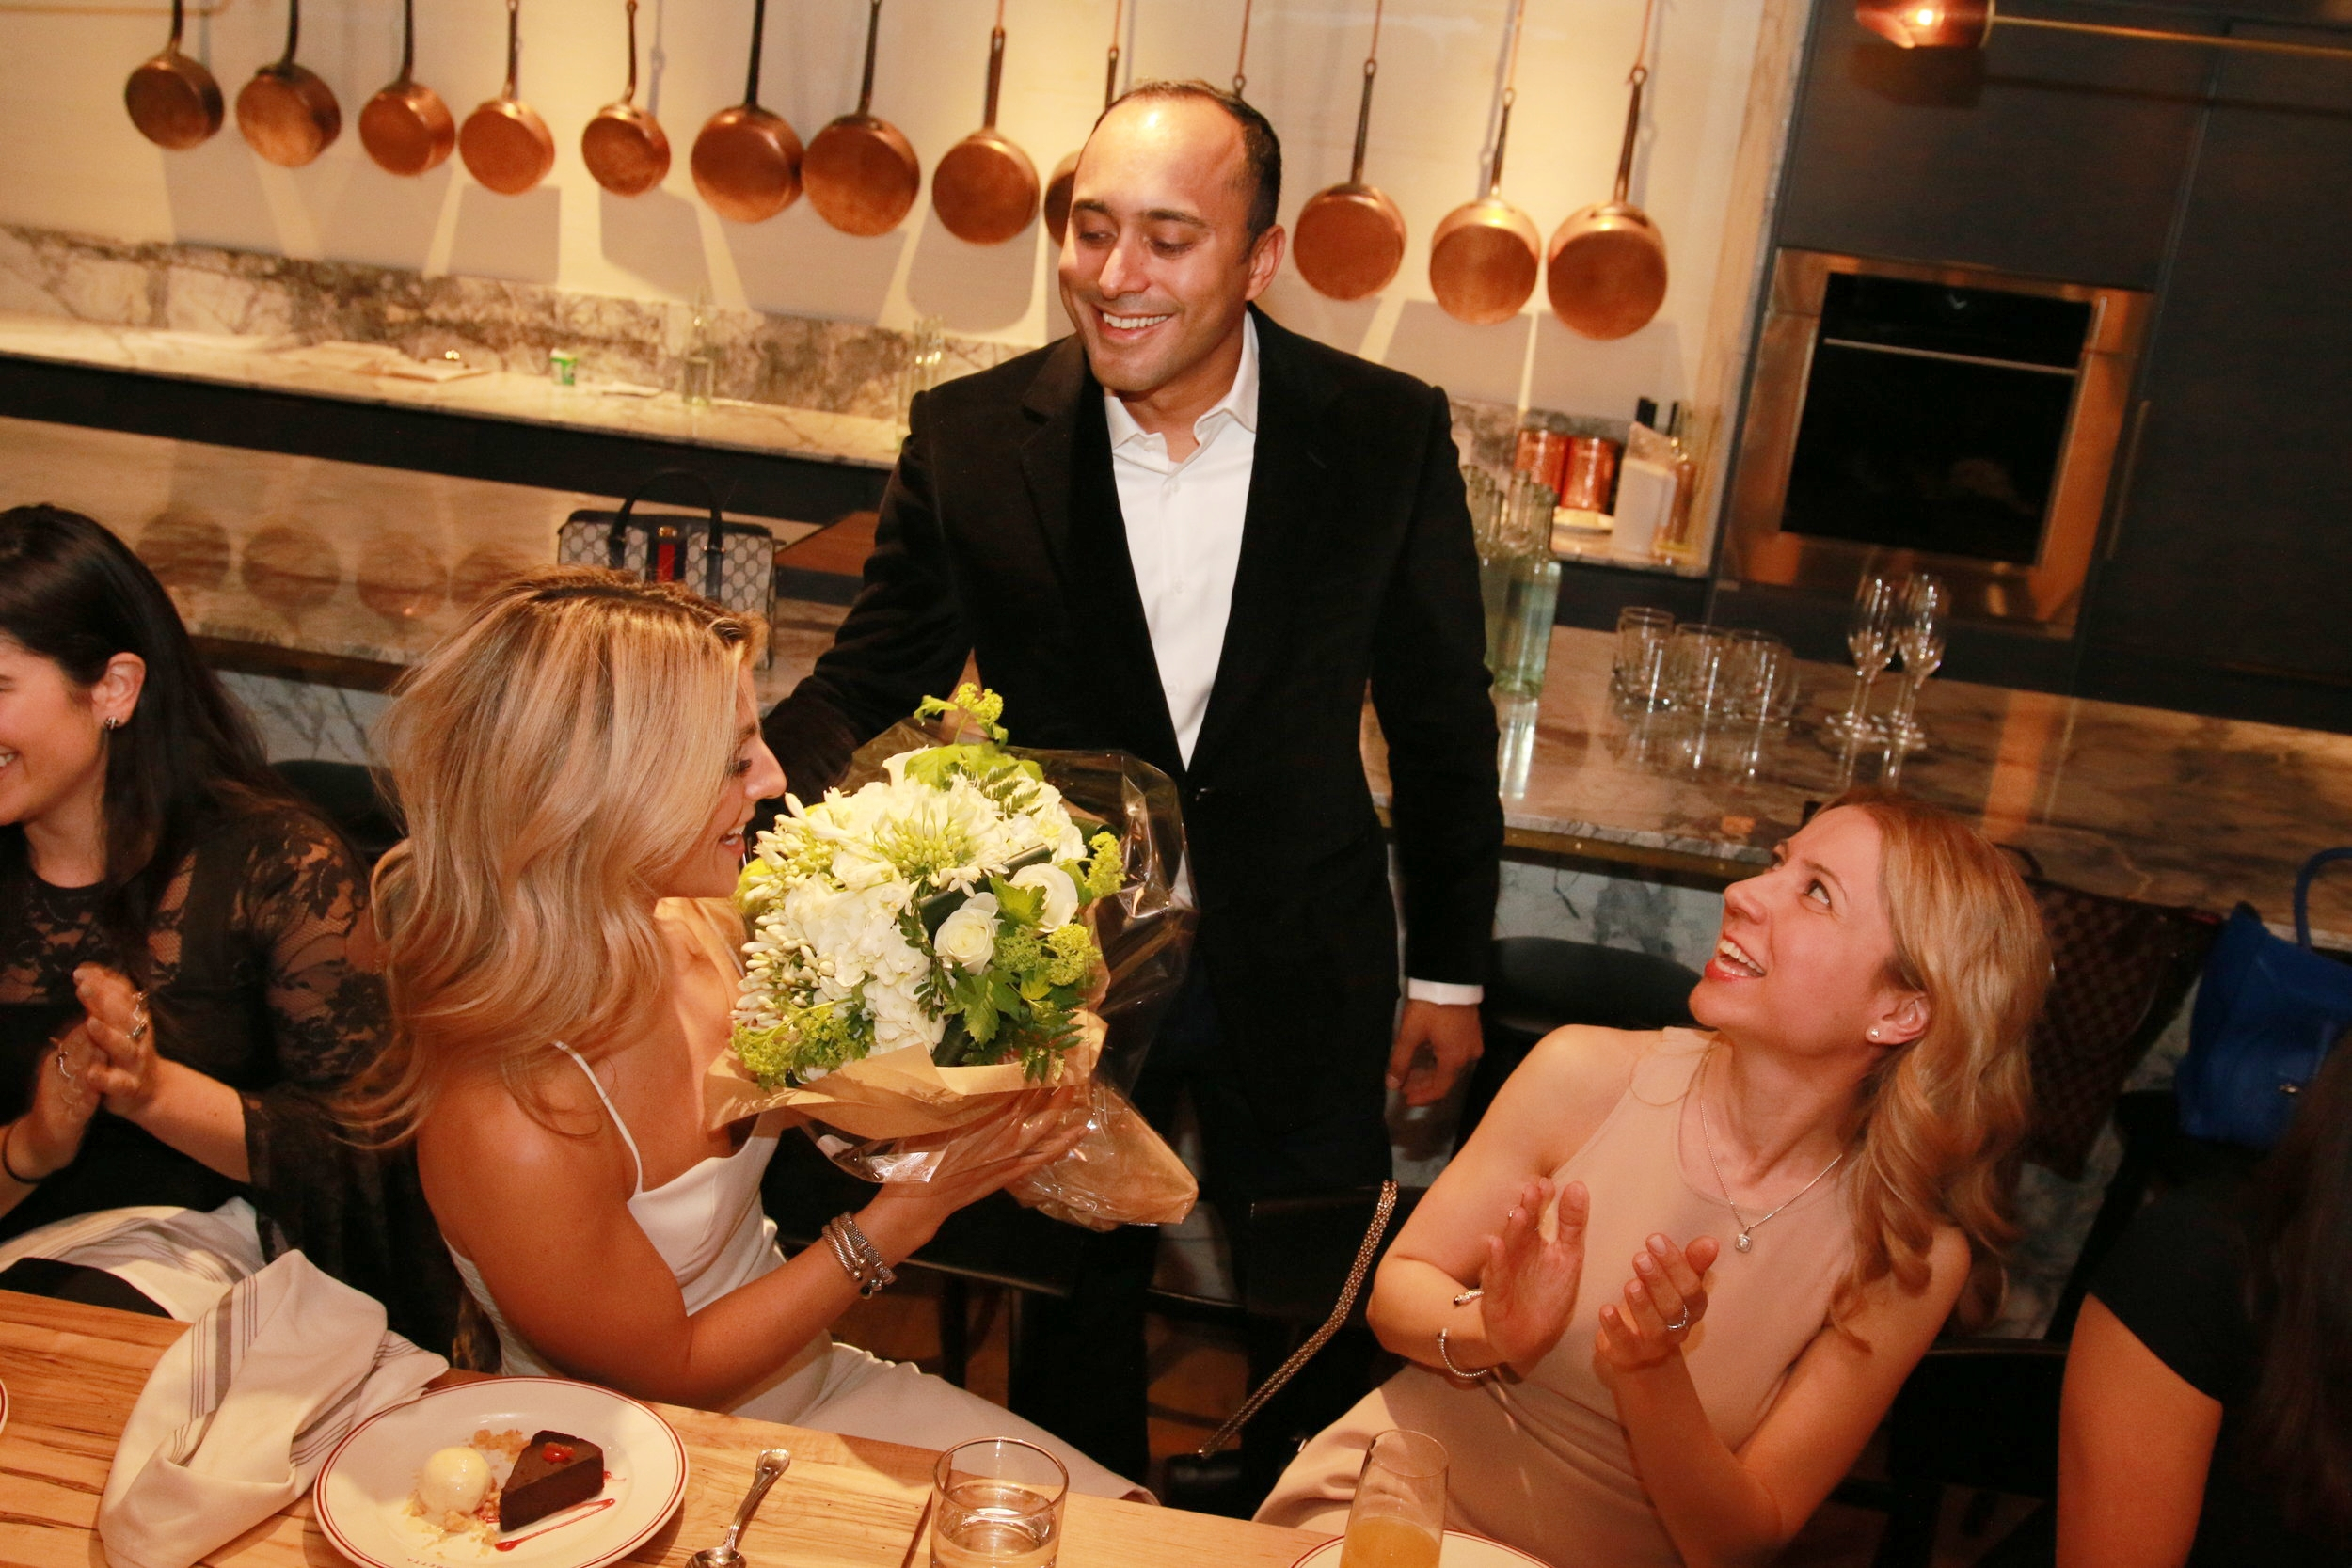 The groom brings his bride flowers at her shower. Destination Wedding Planner Andrea Eppolito is based in Las Vegas.